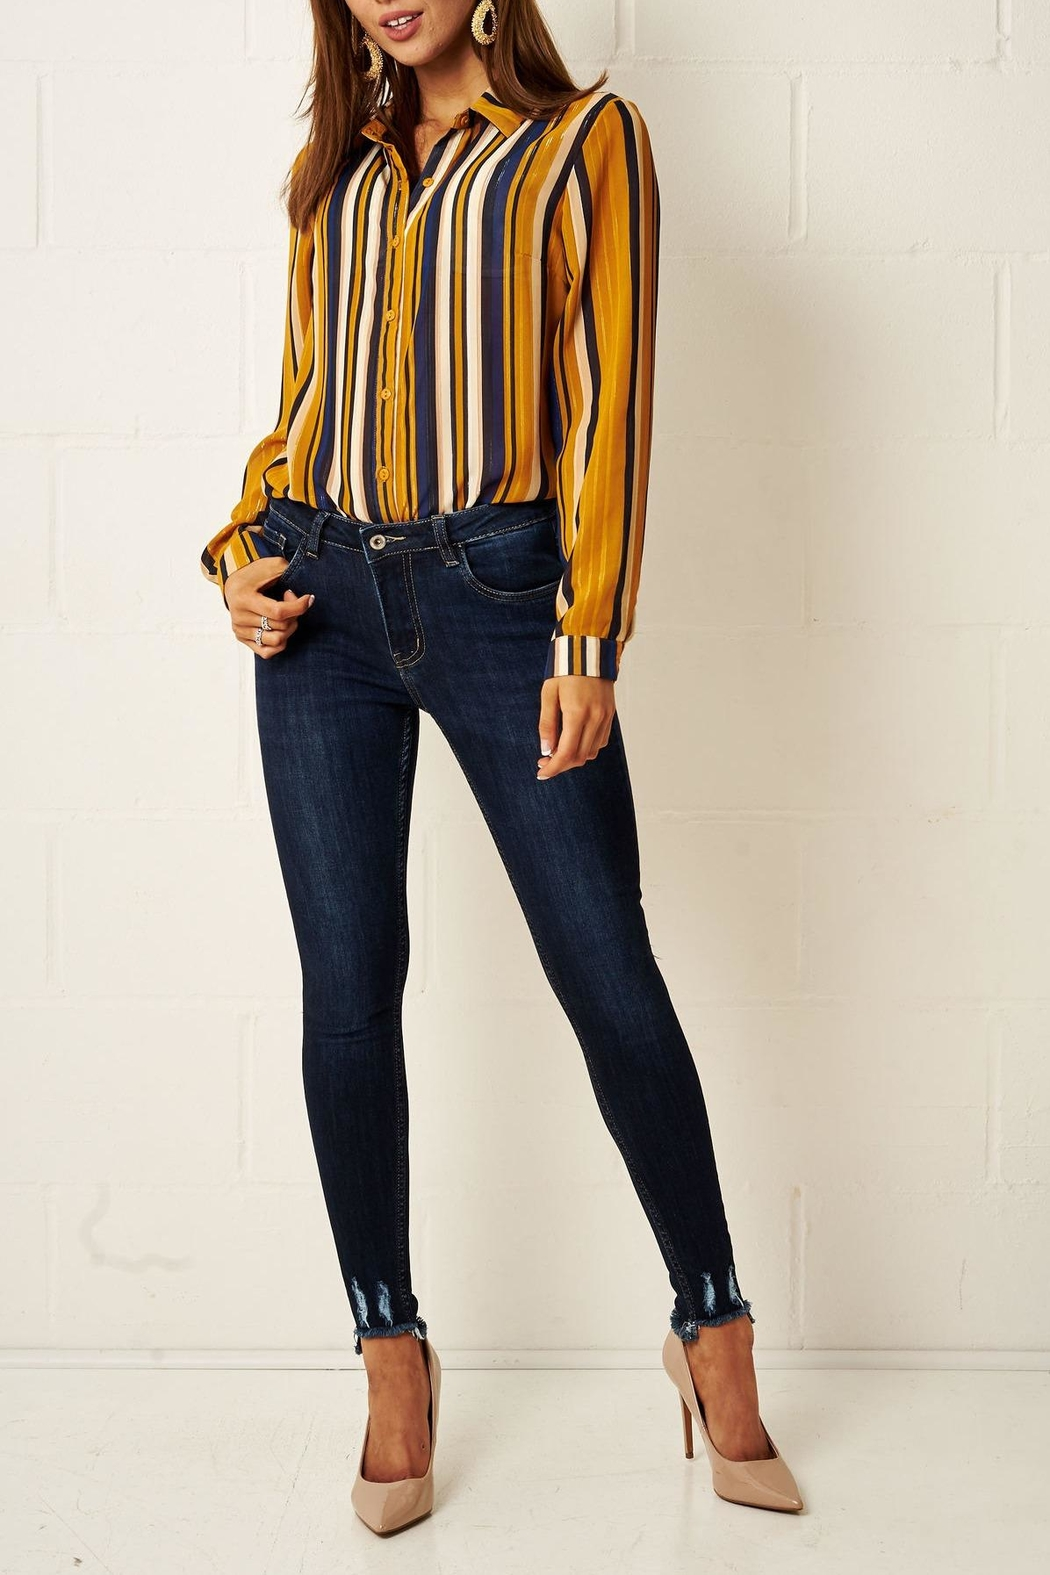 frontrow Multi-Colour Striped Shirt - Side Cropped Image